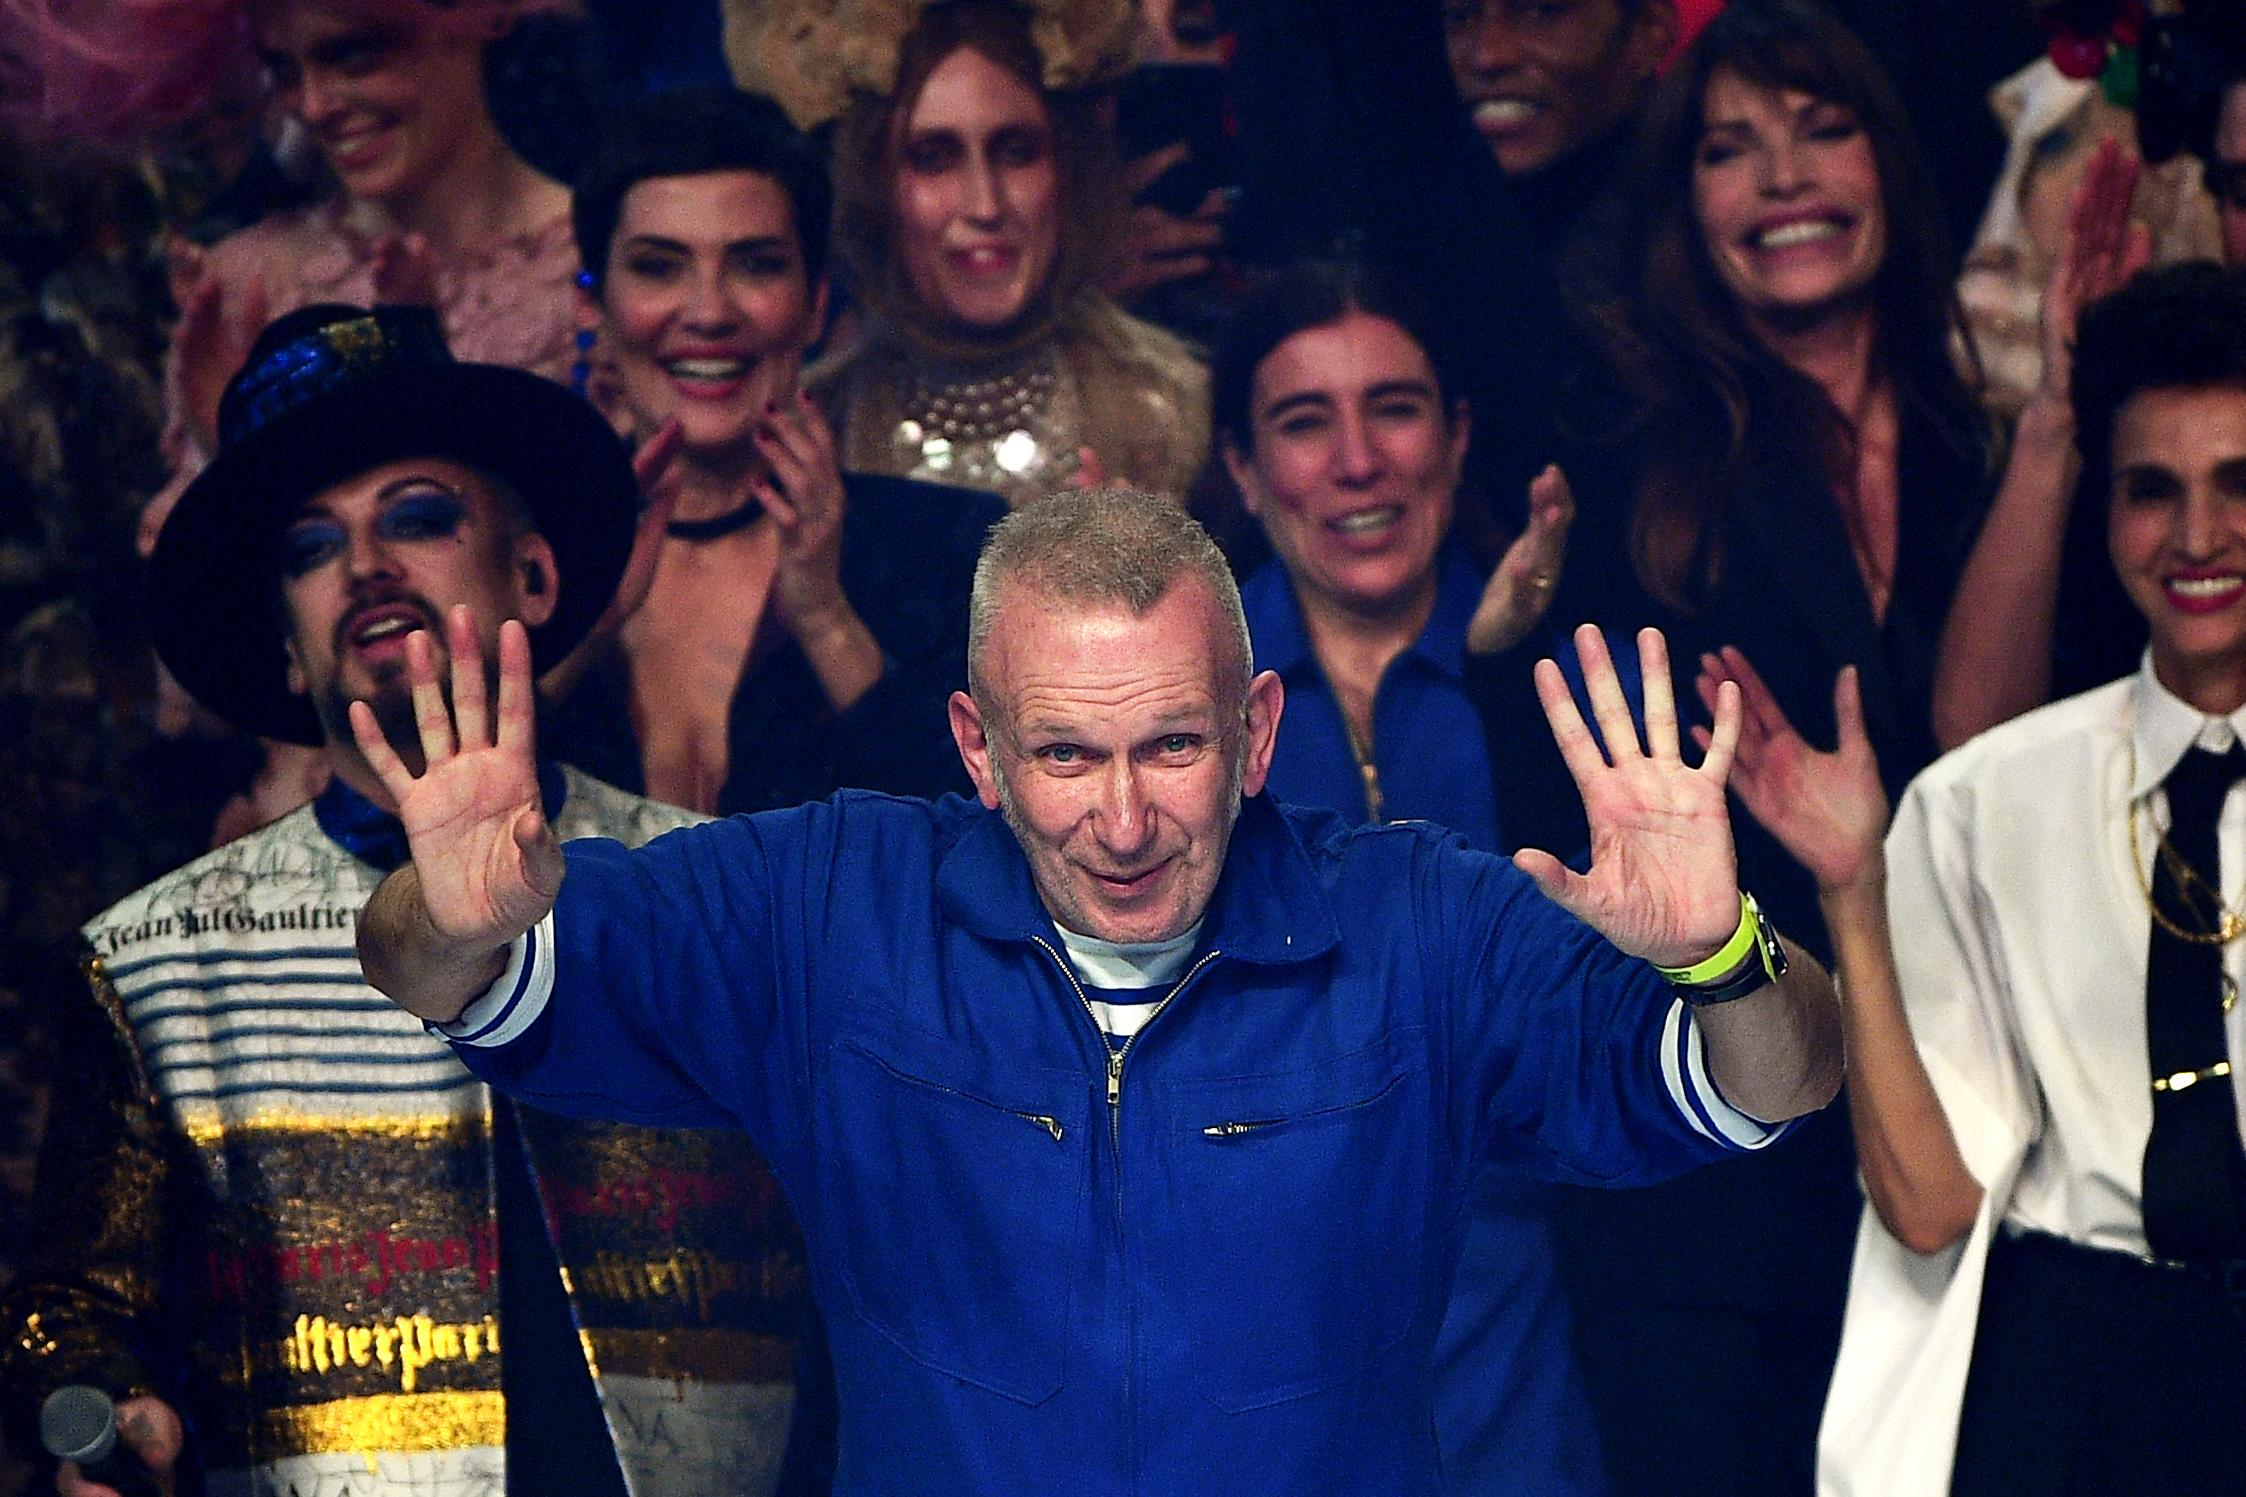 French designer Jean Paul Gaultier acknowledges the audience at the end of his Women's Spring-Summer 2020 Haute Couture collection fashion show in Paris, on January 22, 2020. [Photo: Getty]